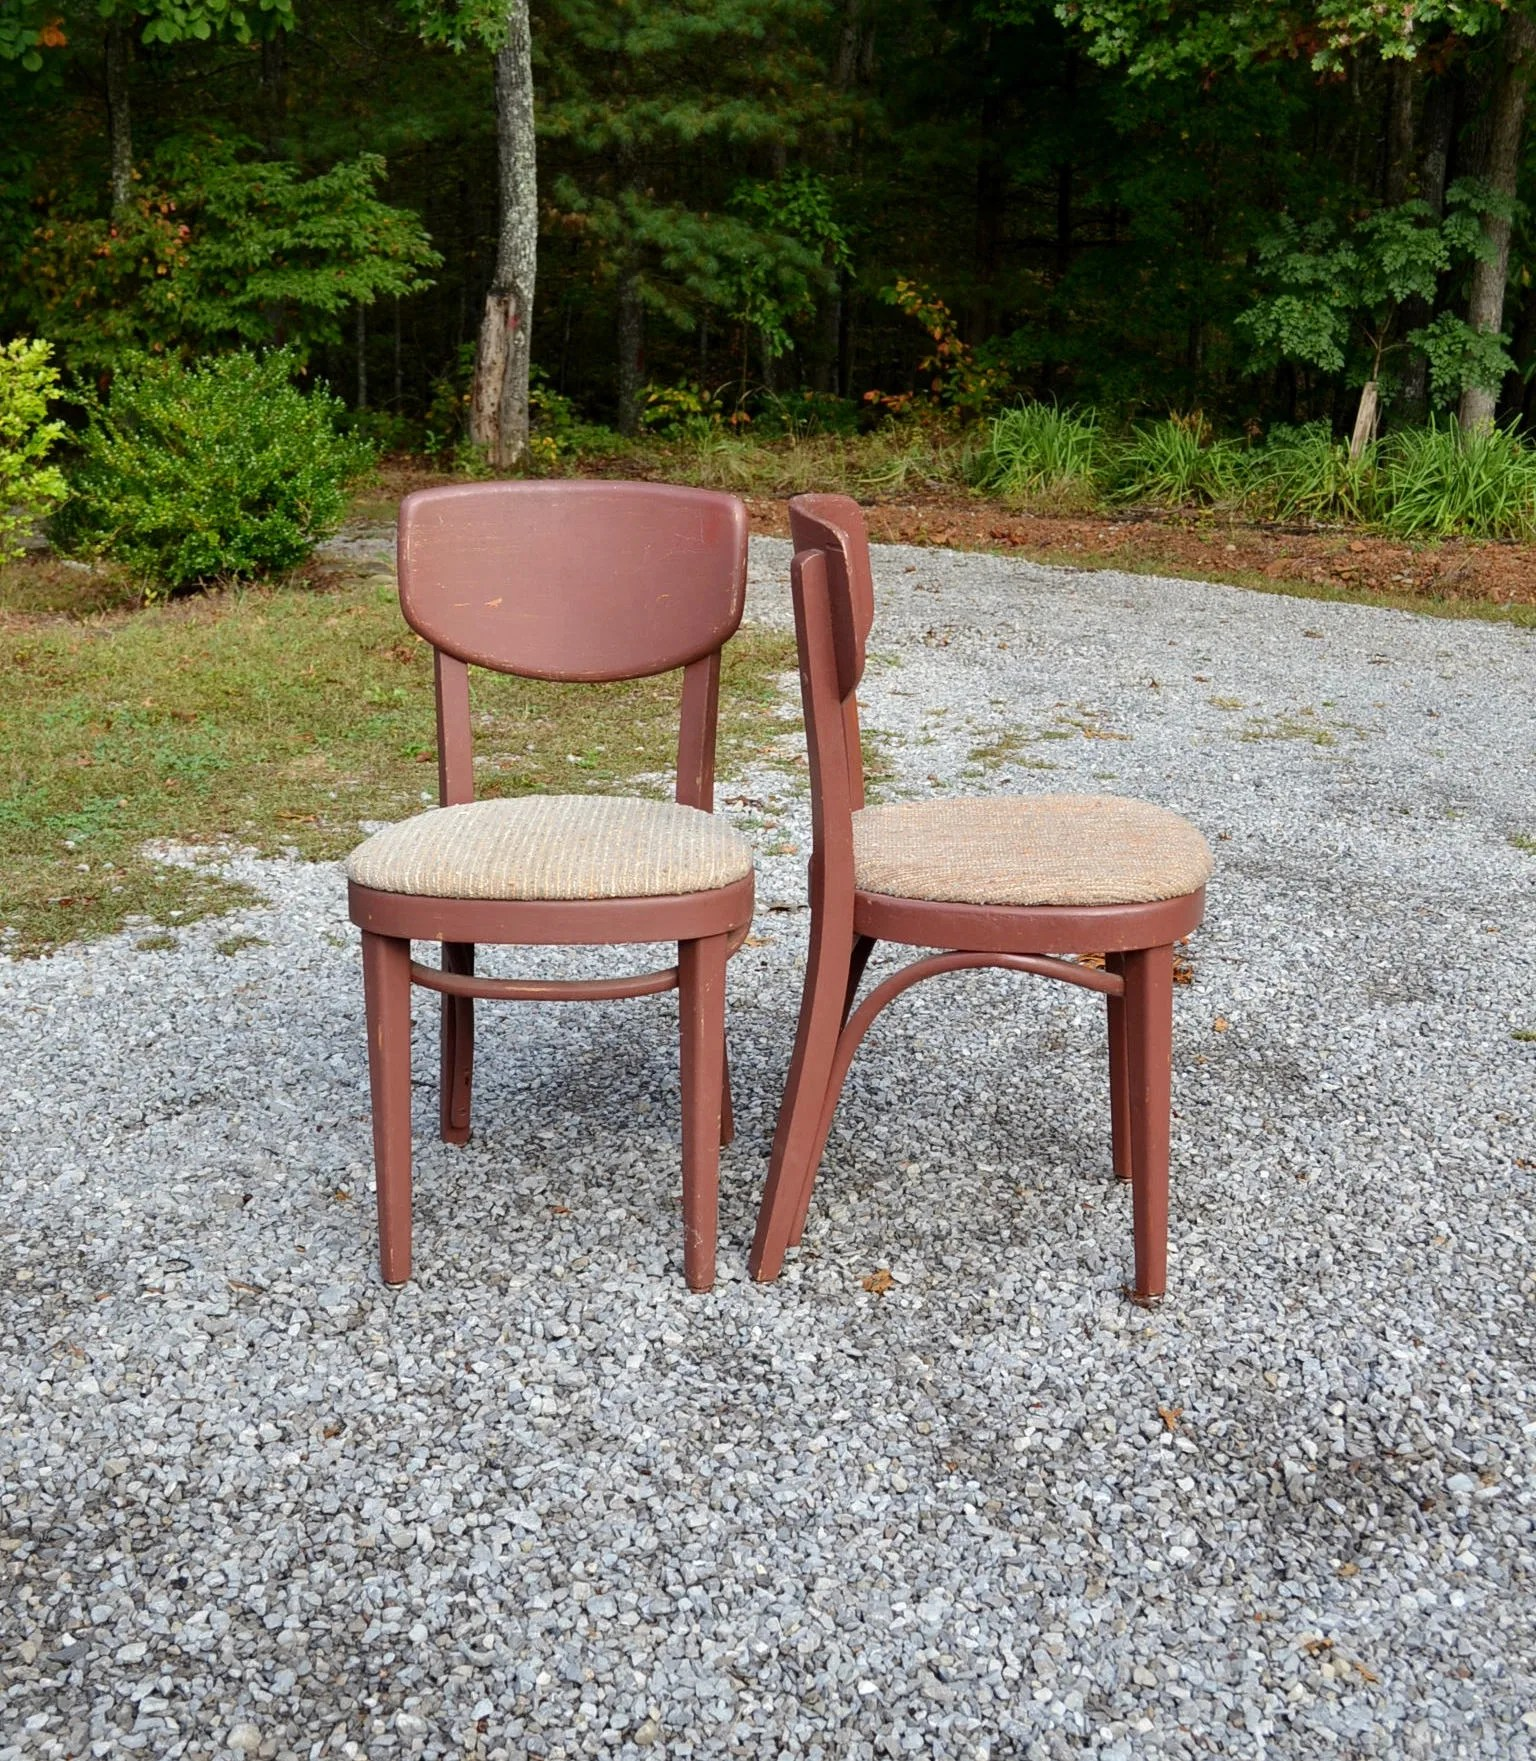 vintage bentwood chairs wedding chair covers tunbridge wells painted furniture upholstered seat etsy image 0